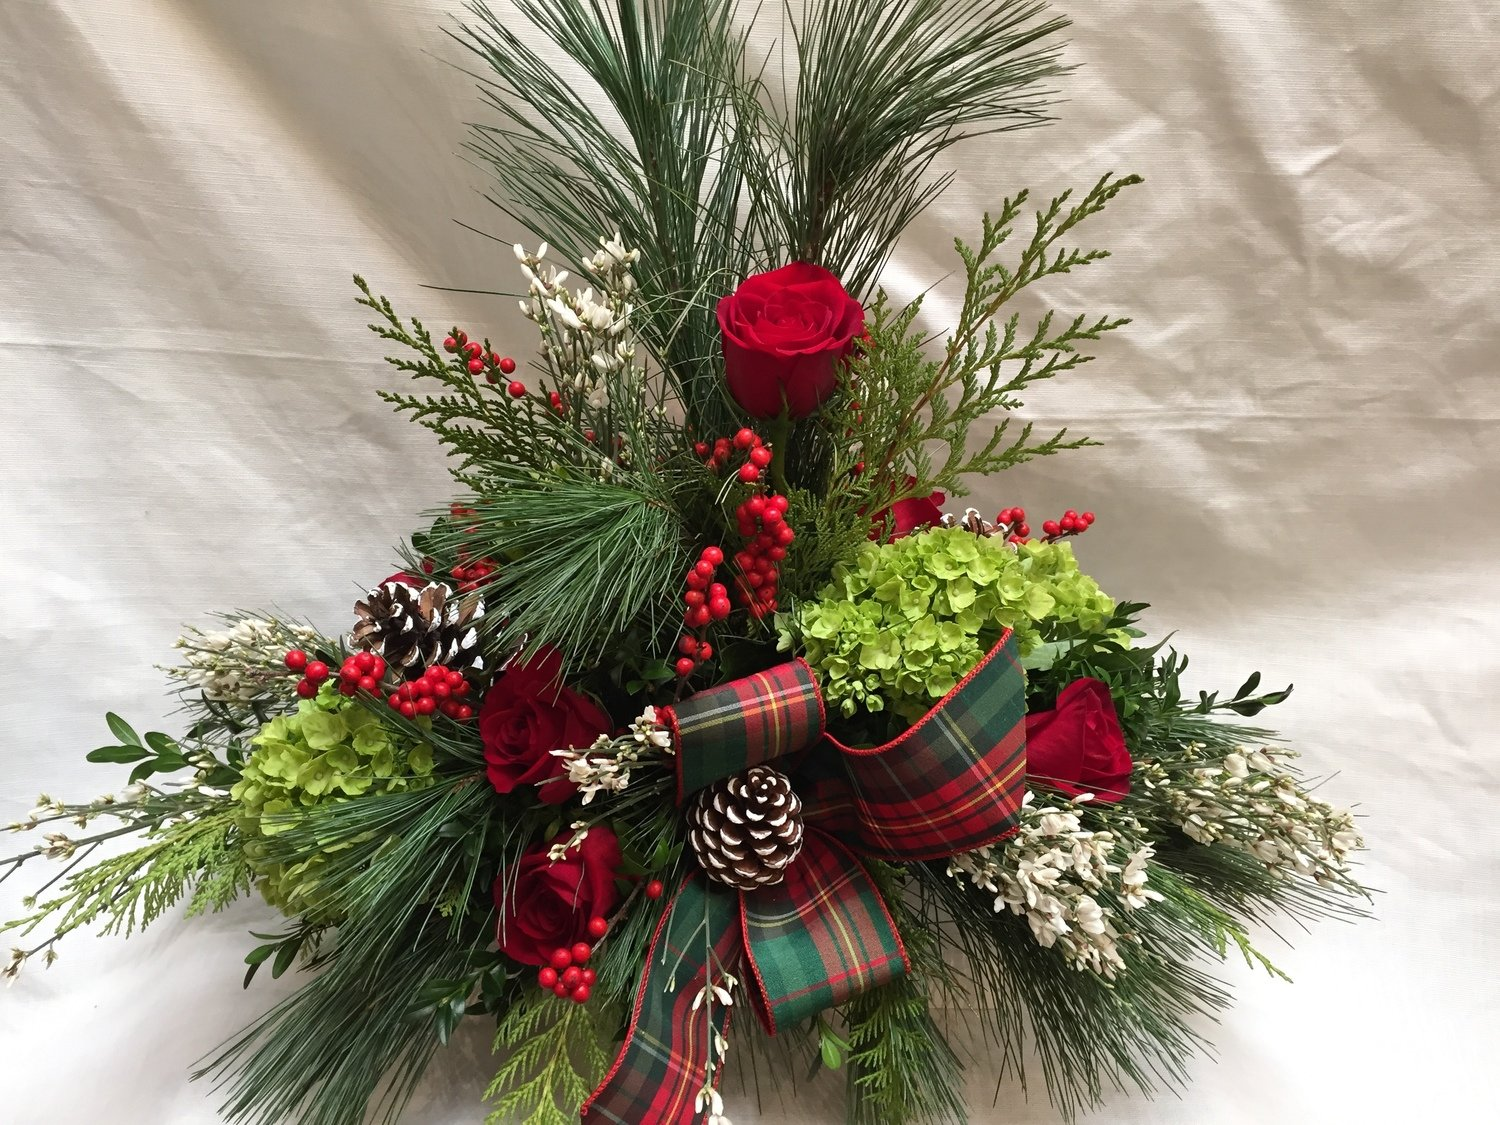 Kringle Centerpiece by Twigs Florist